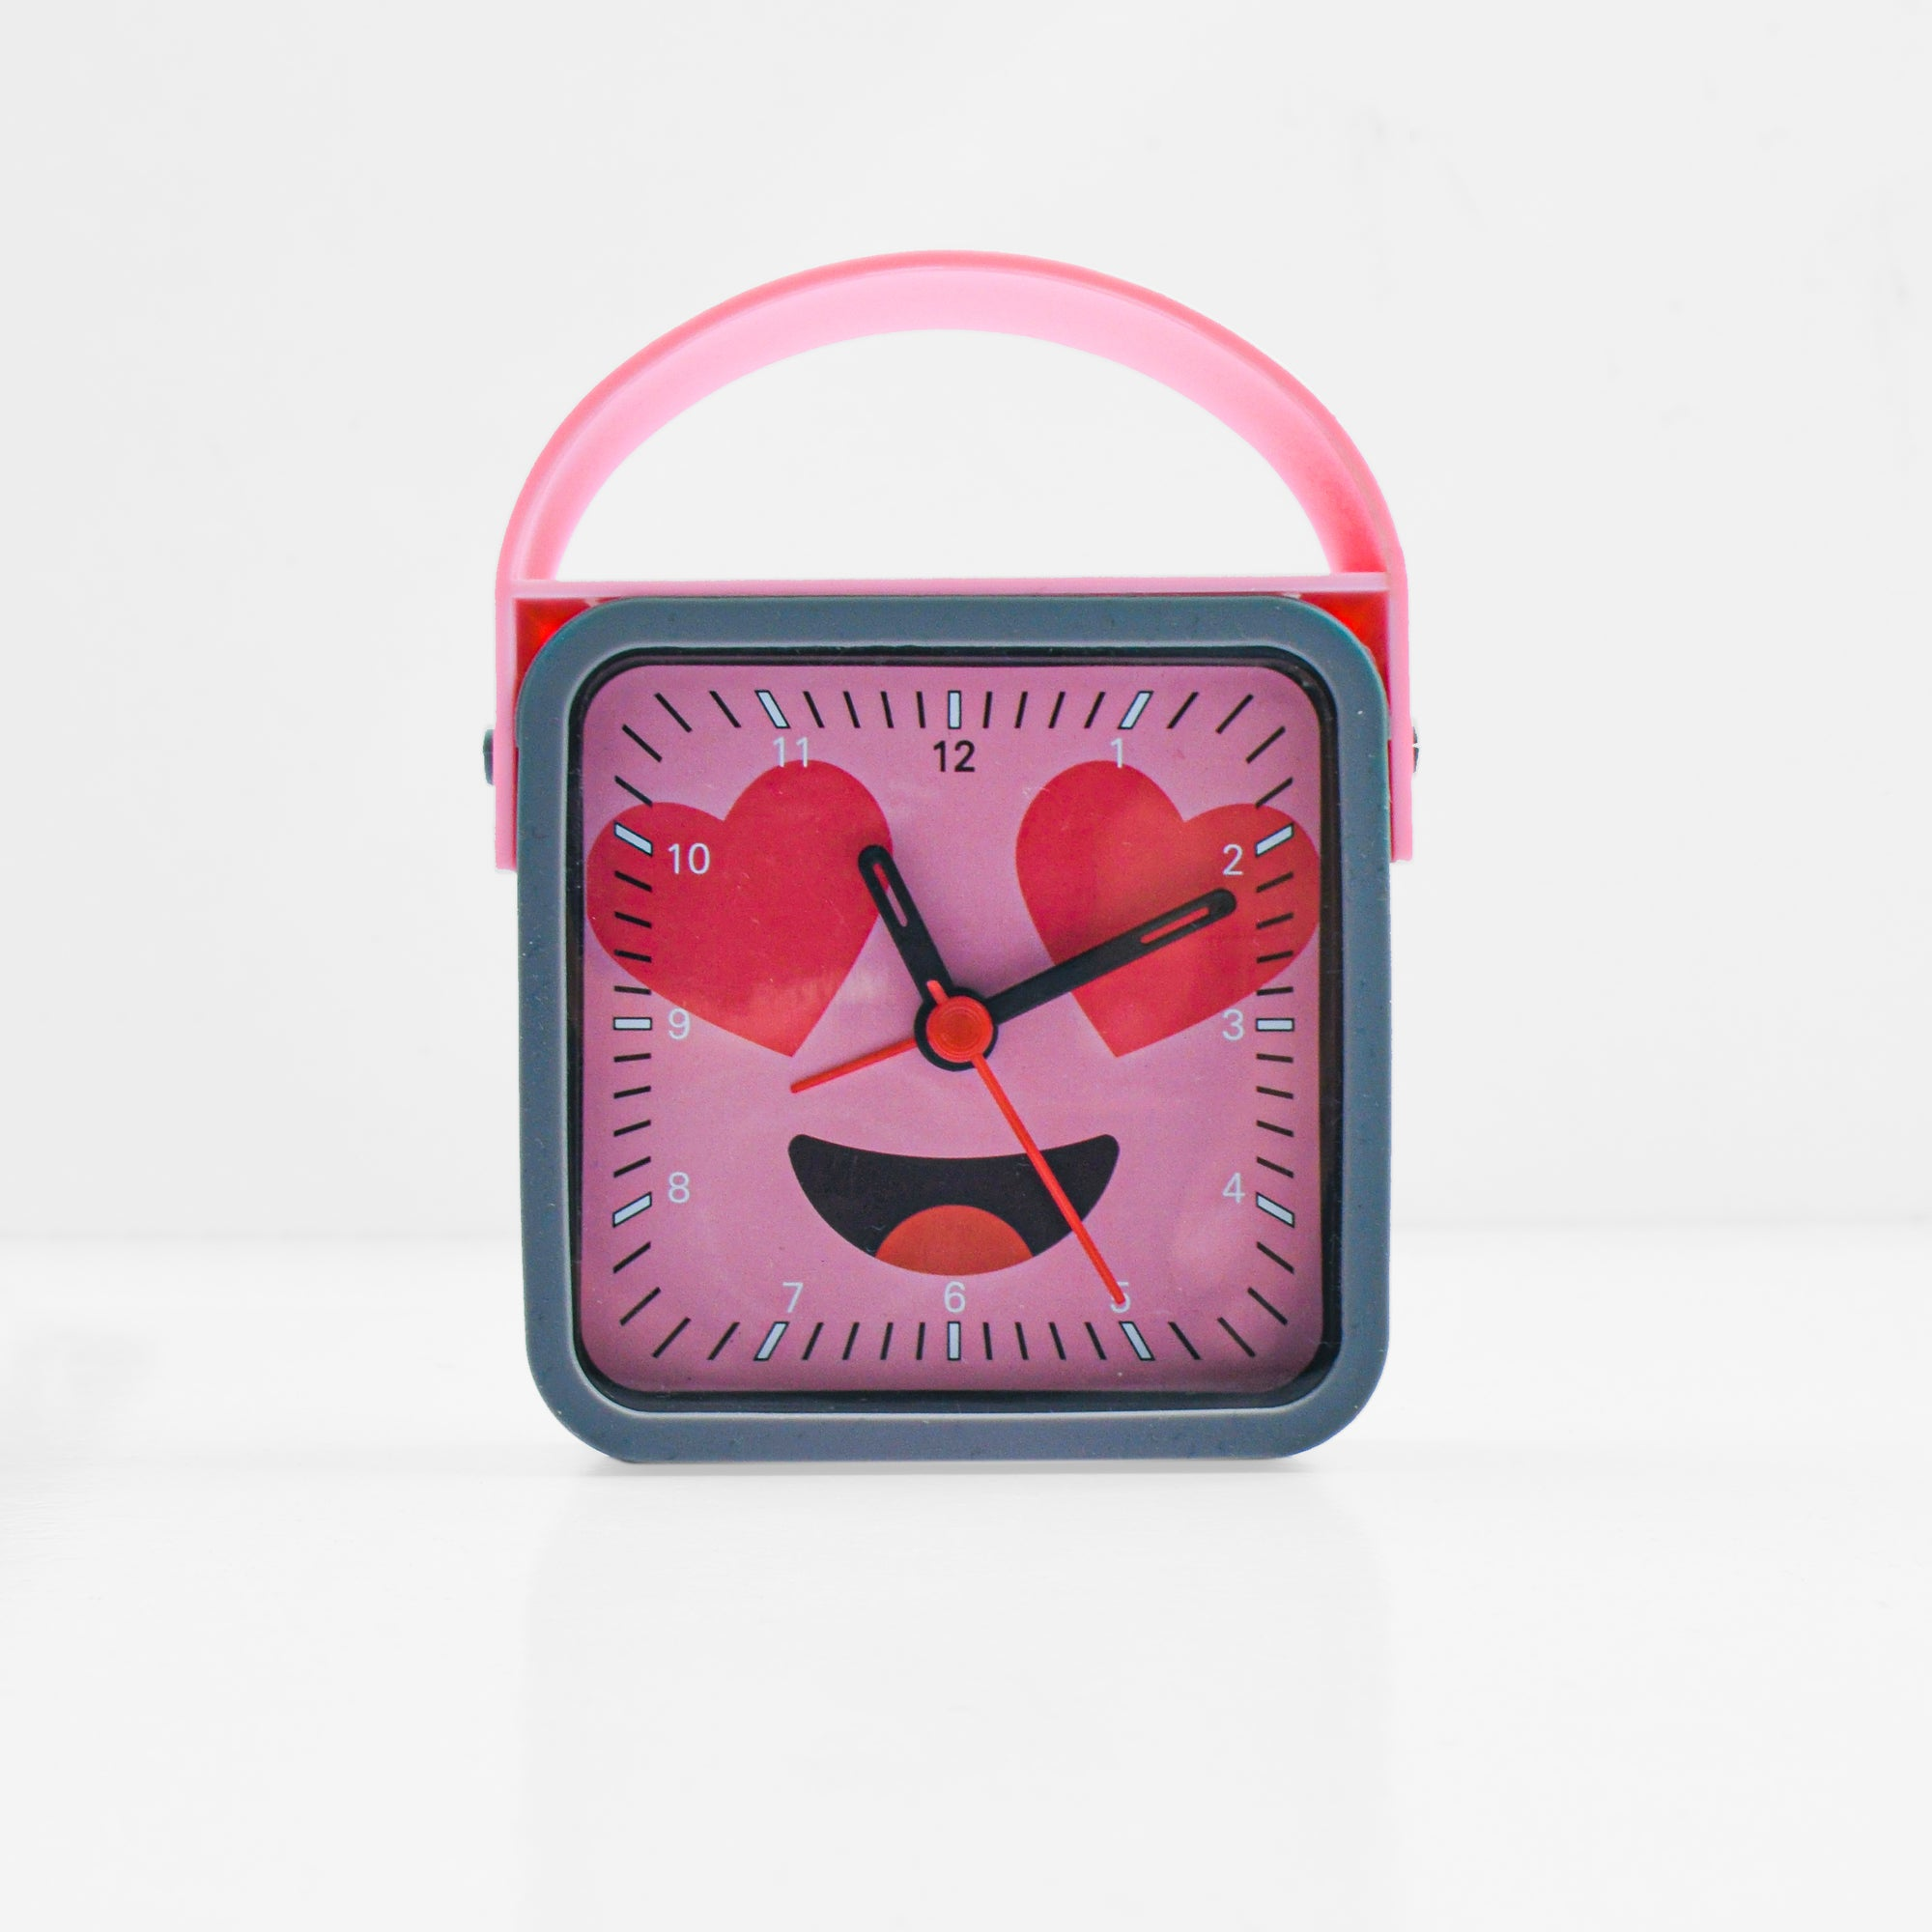 Richard Eichmueller Quartz Alarm Clock-NA11449